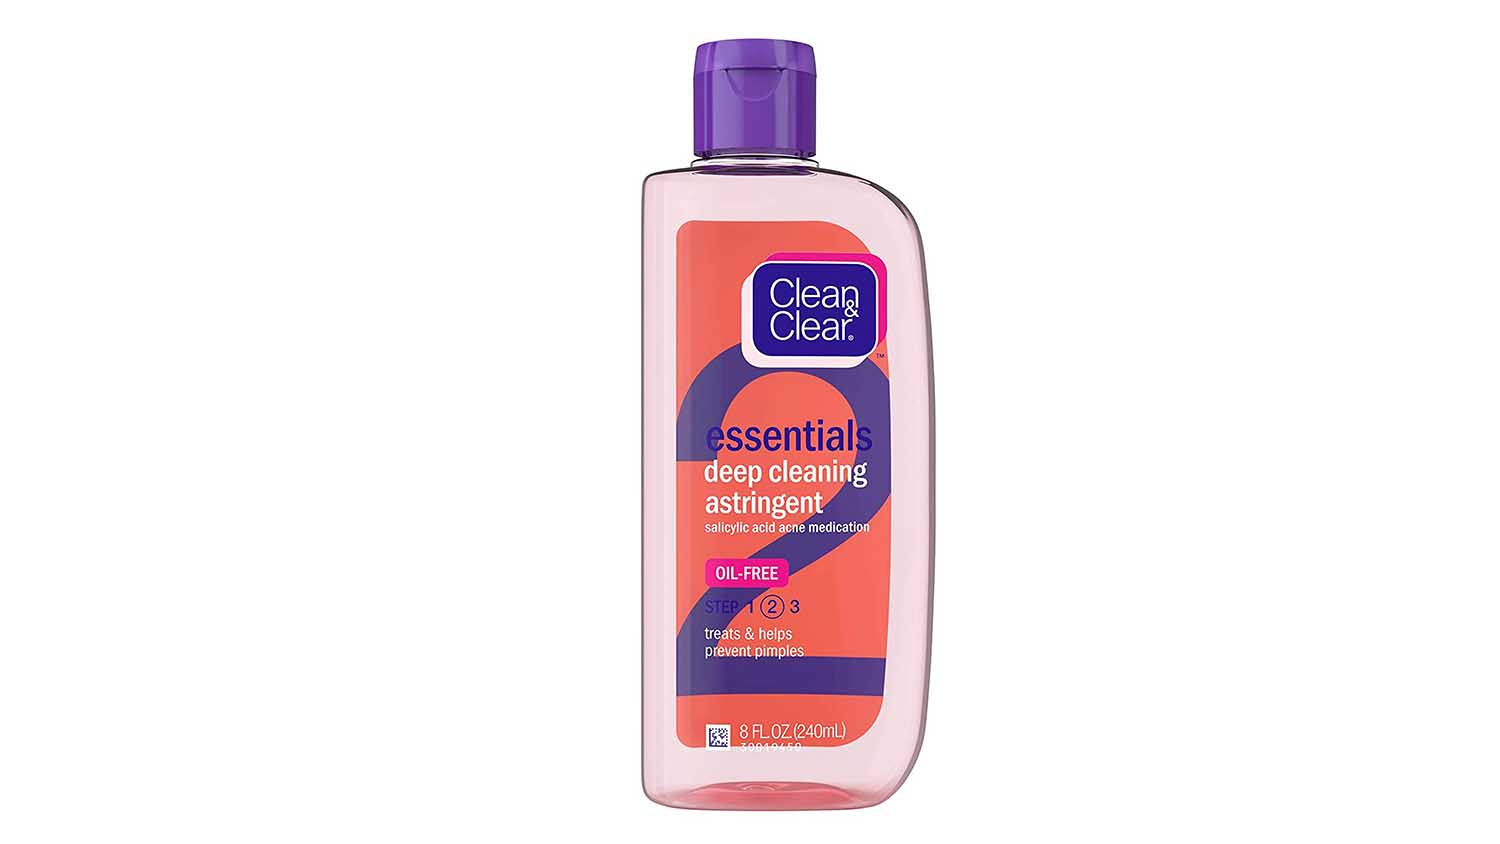 Clean and Clear astringent beauty bargains